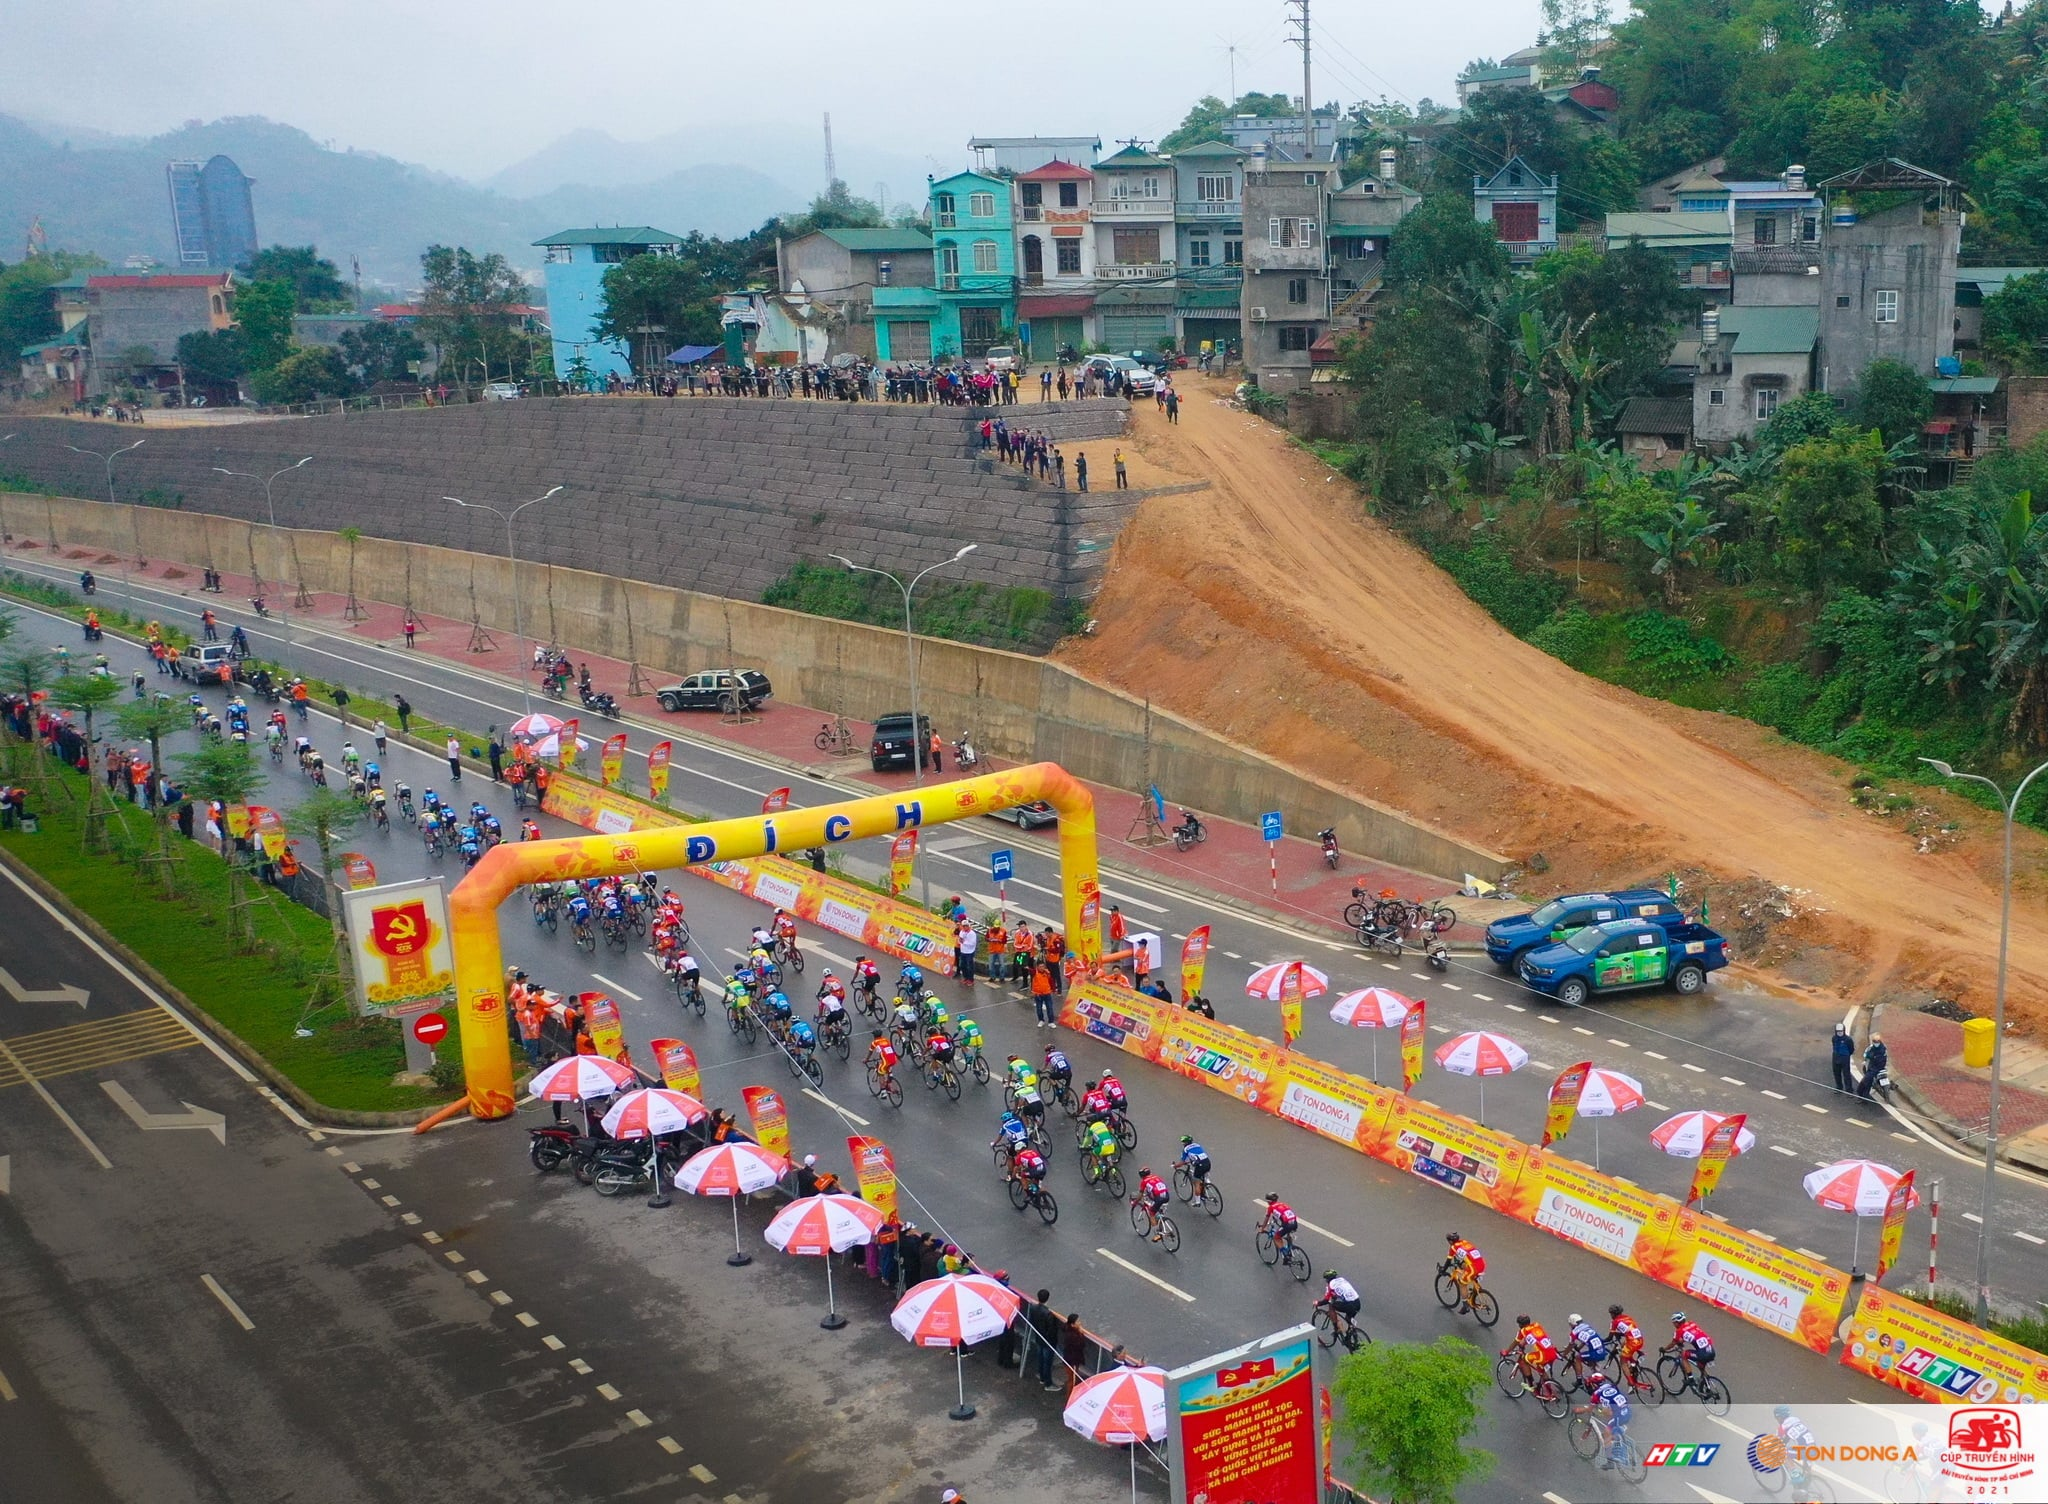 Cyclists compete in the first stage of the 33rd HTV Cup cycling race in Cao Bang Province, Vietnam, April 6, 2021. Photo: HTV